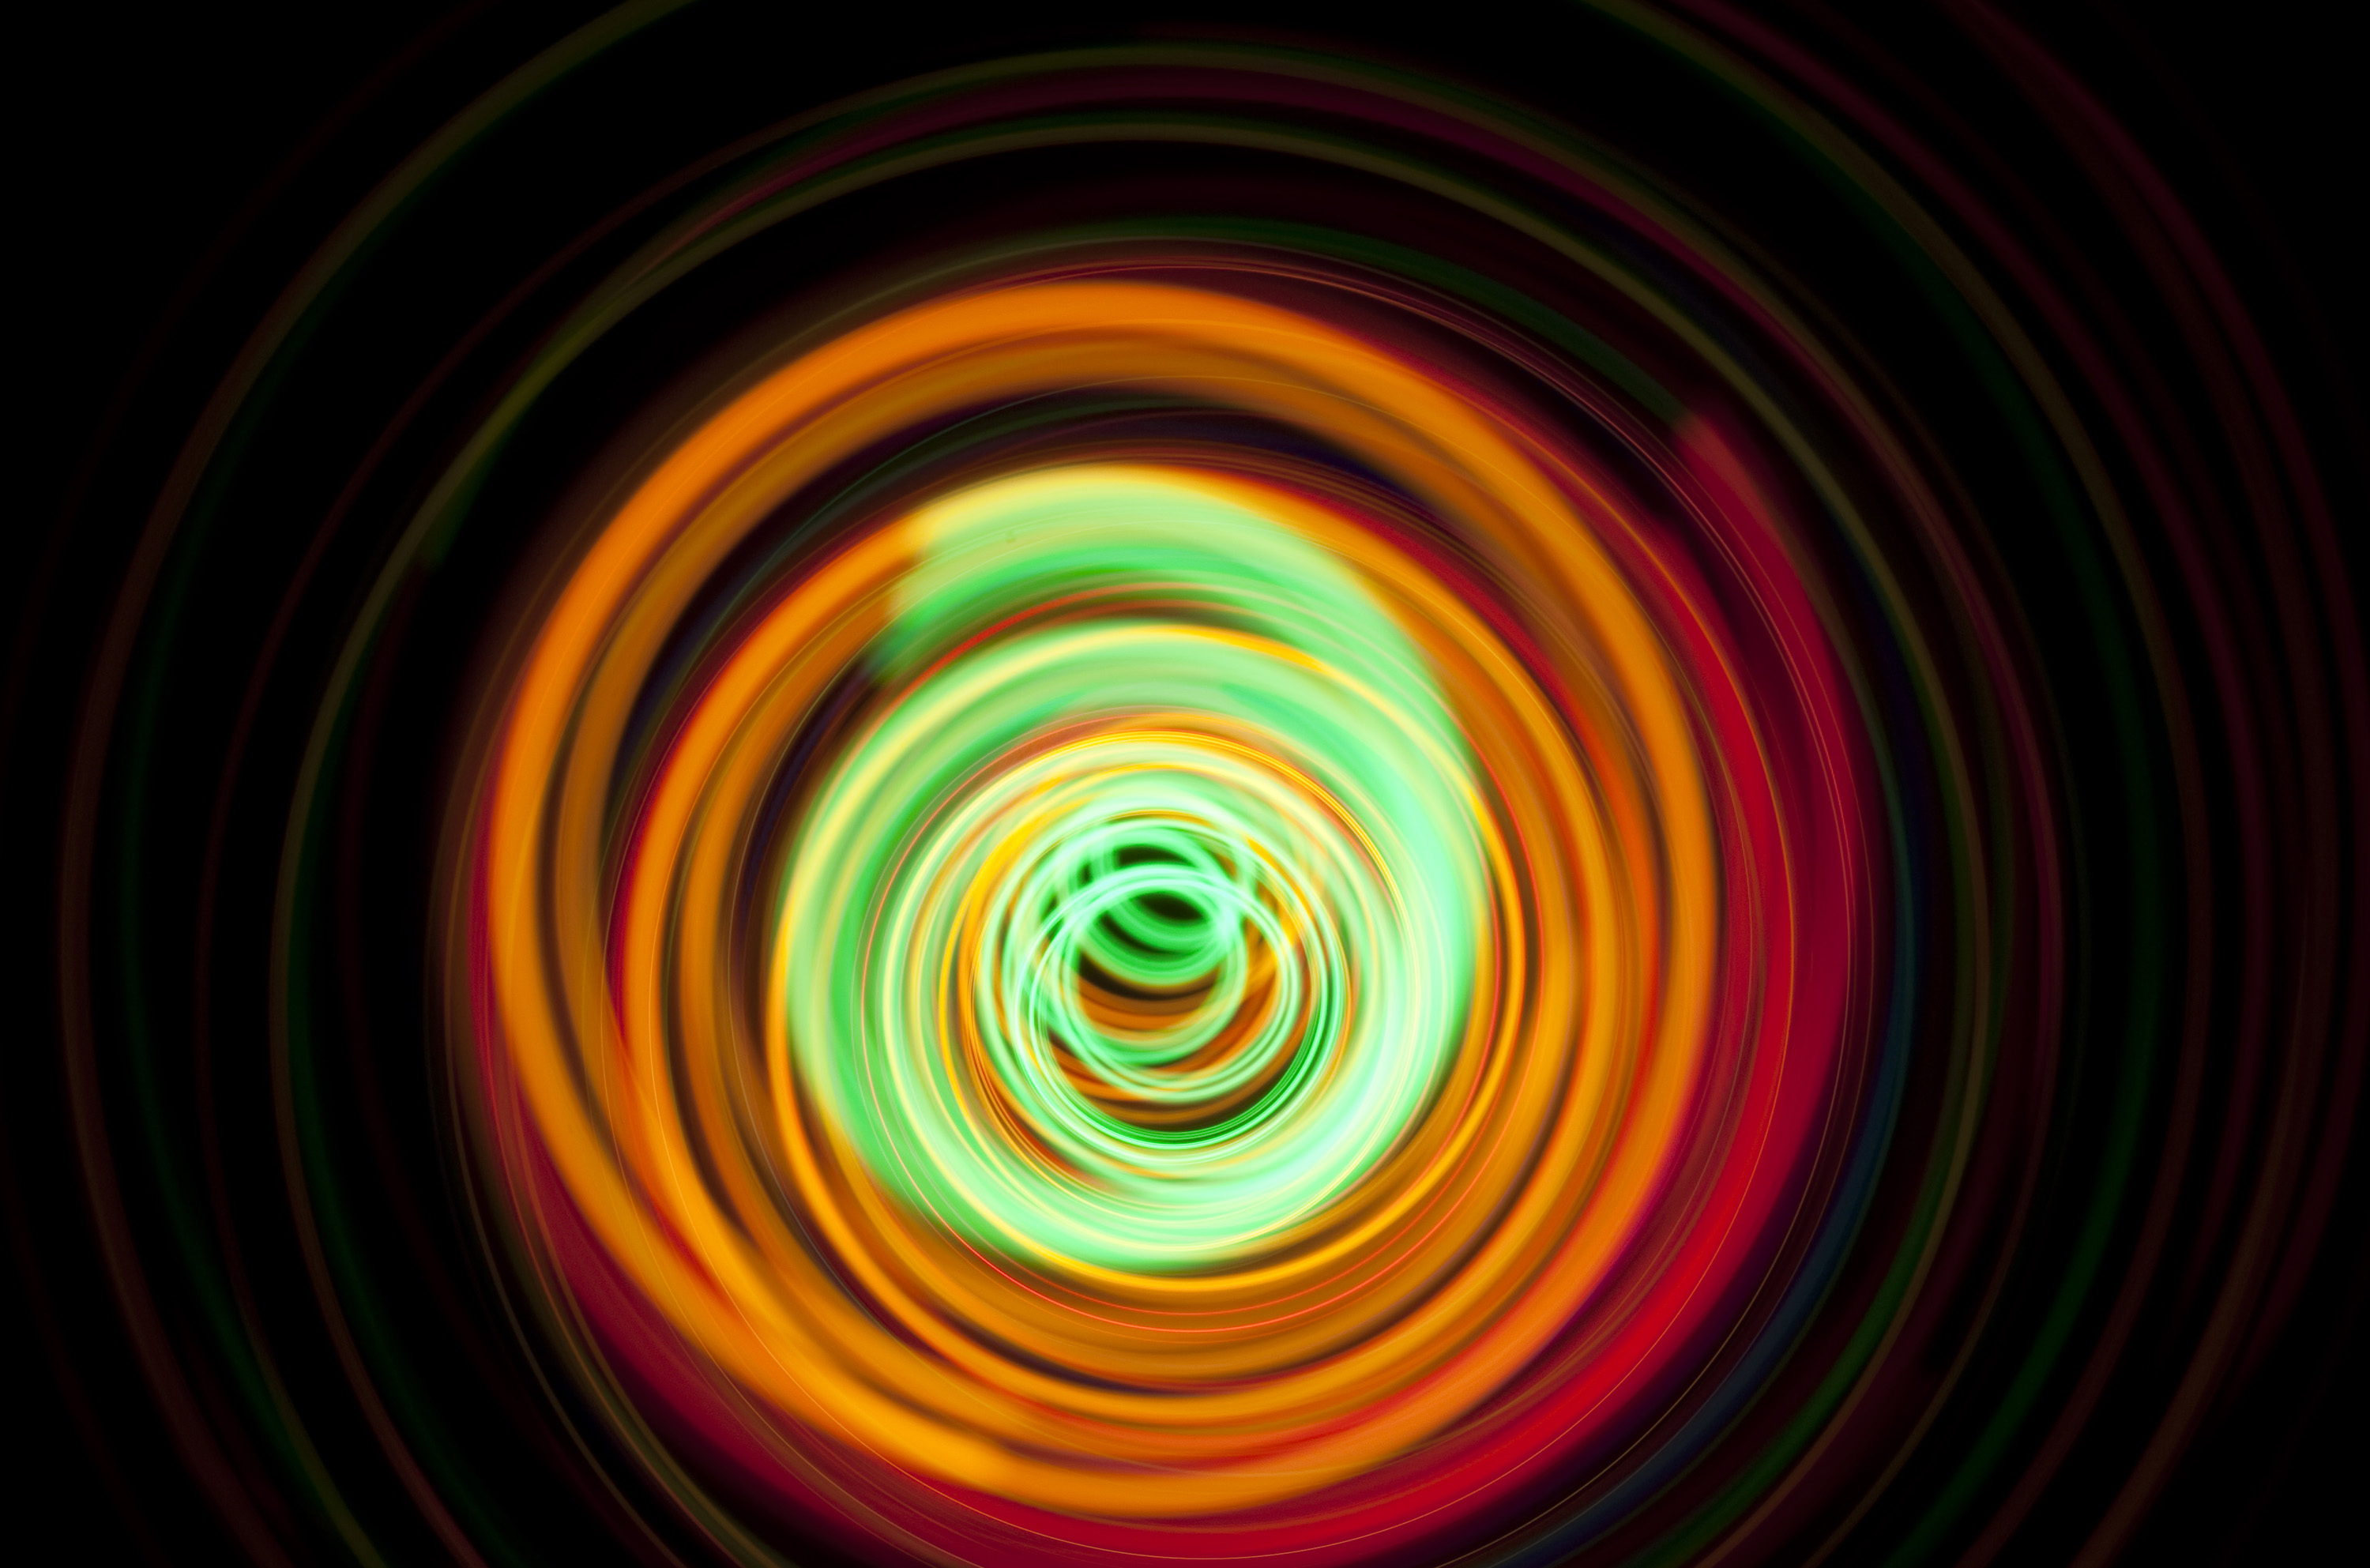 orange and green abstract spiraling light effect